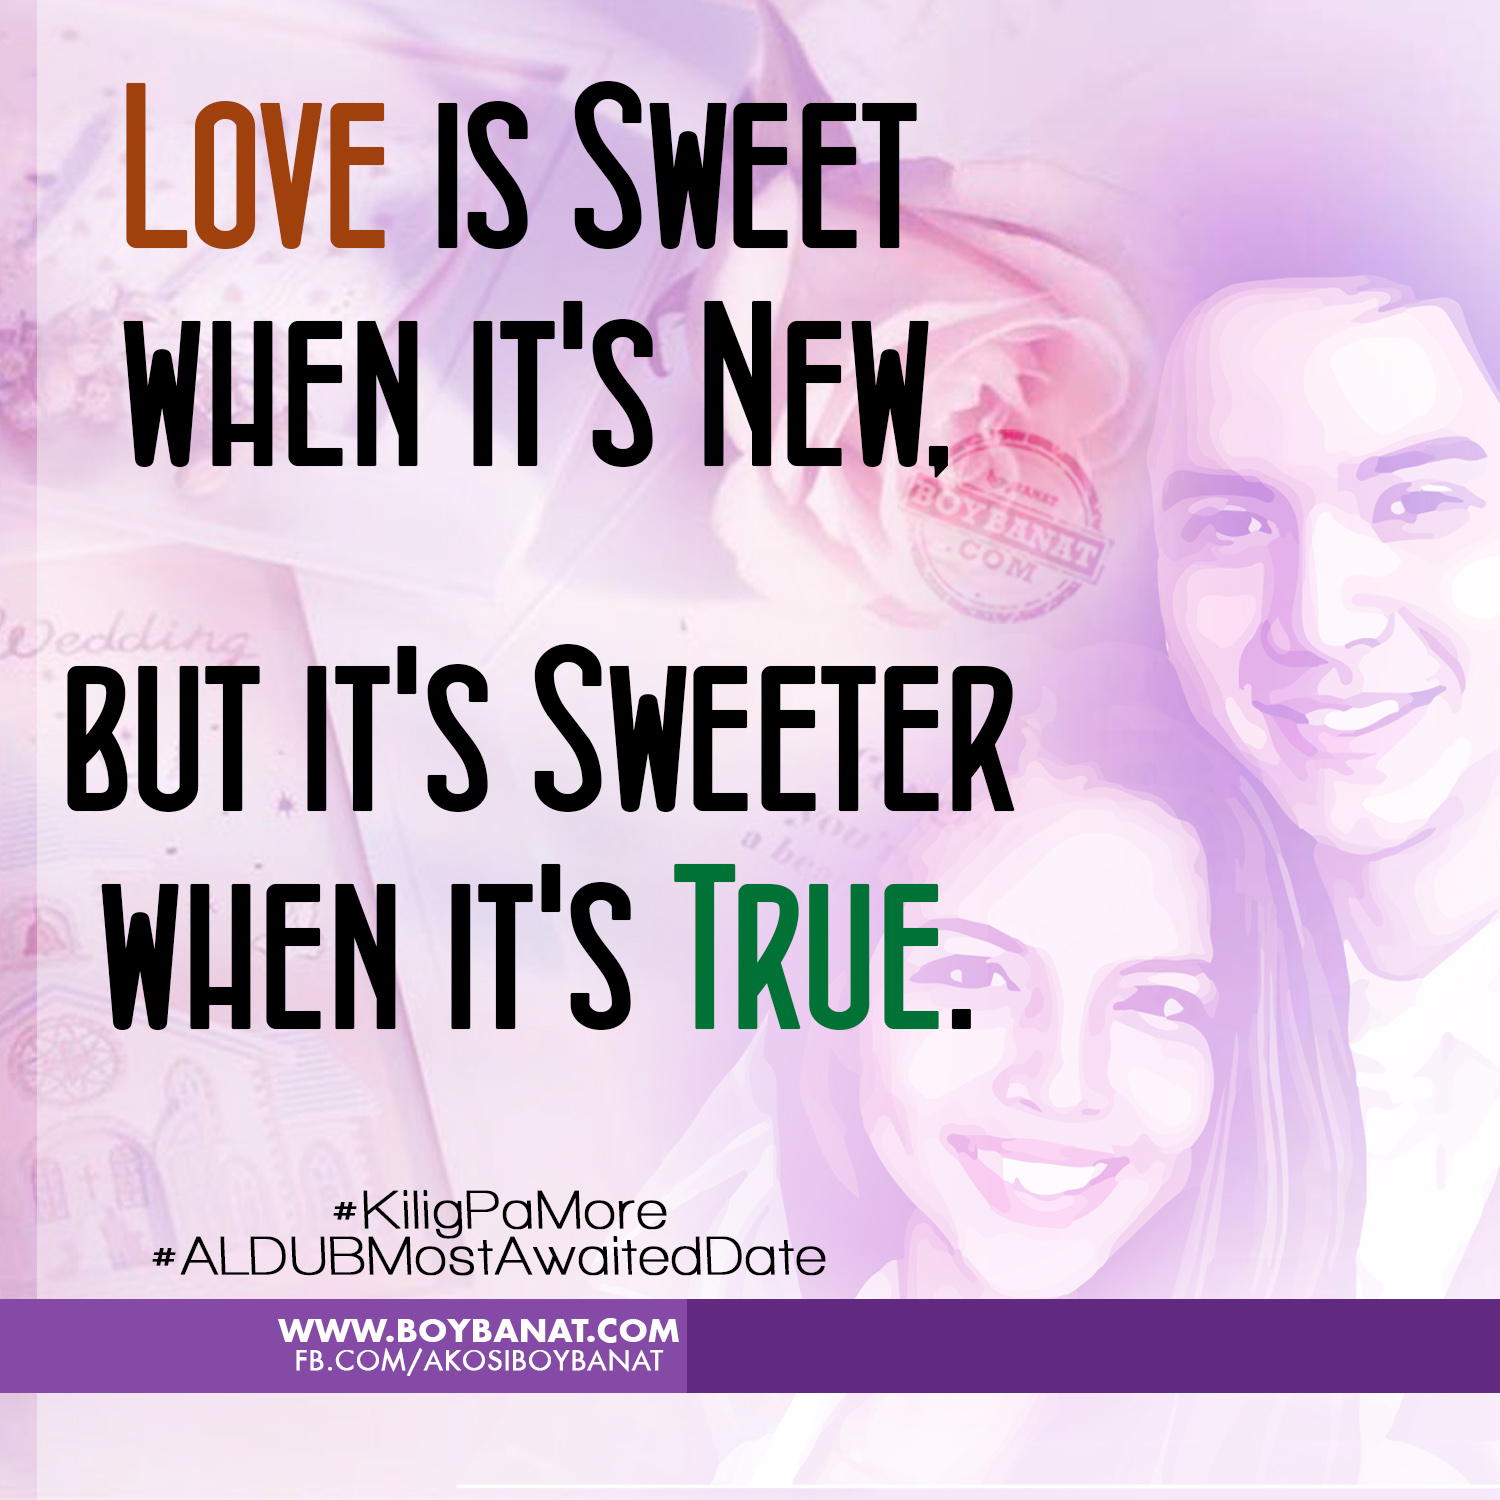 5 Meaningful Love Quotes on AlDub s Most Awaited First Date